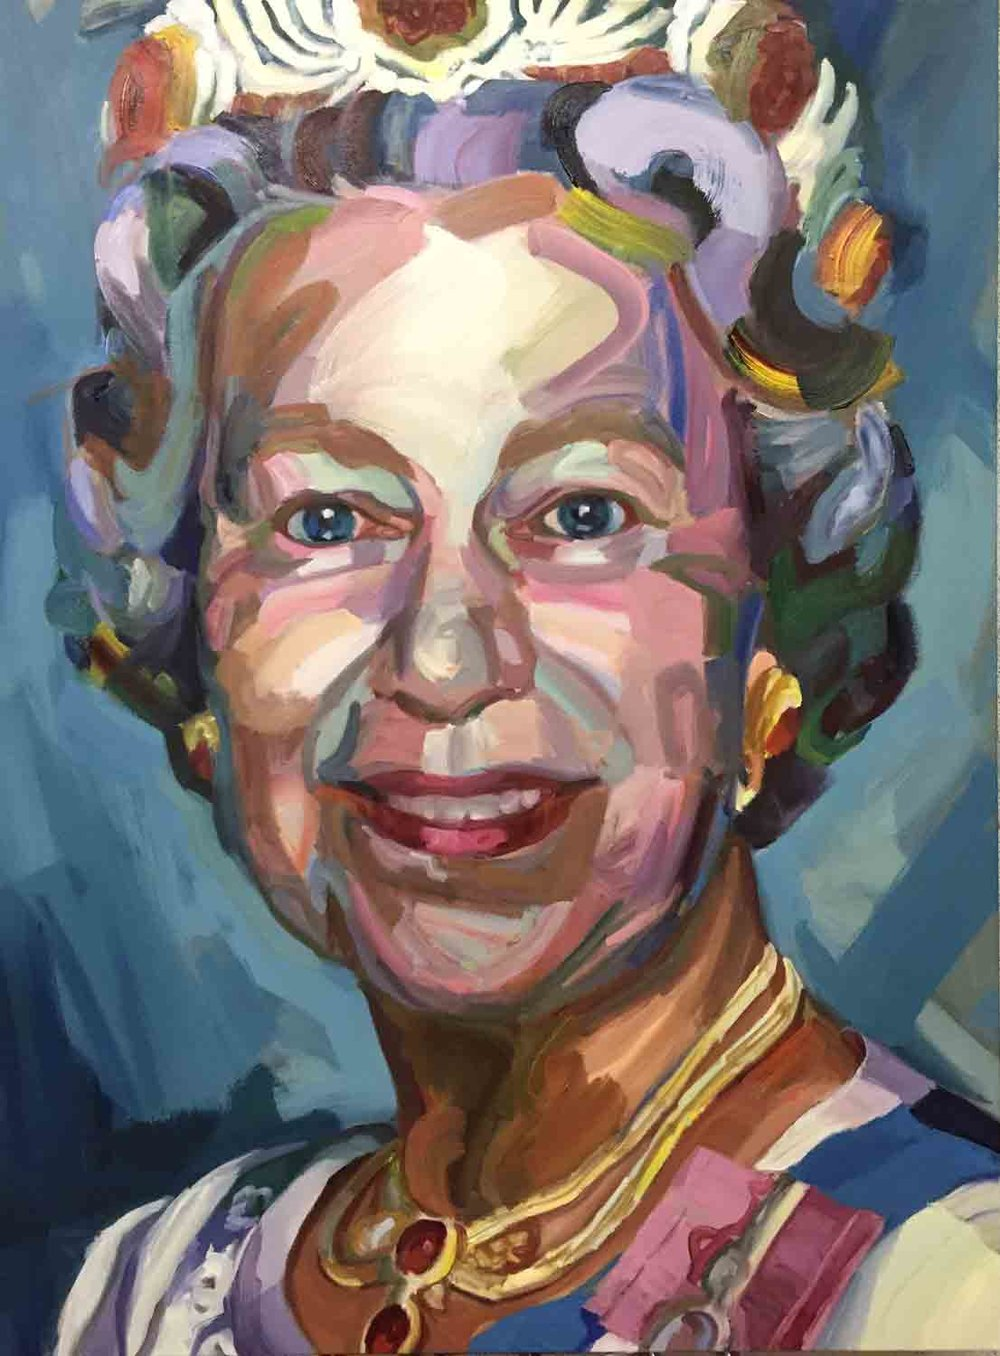 The Queen, 2018 Oil on canvas 36x48""